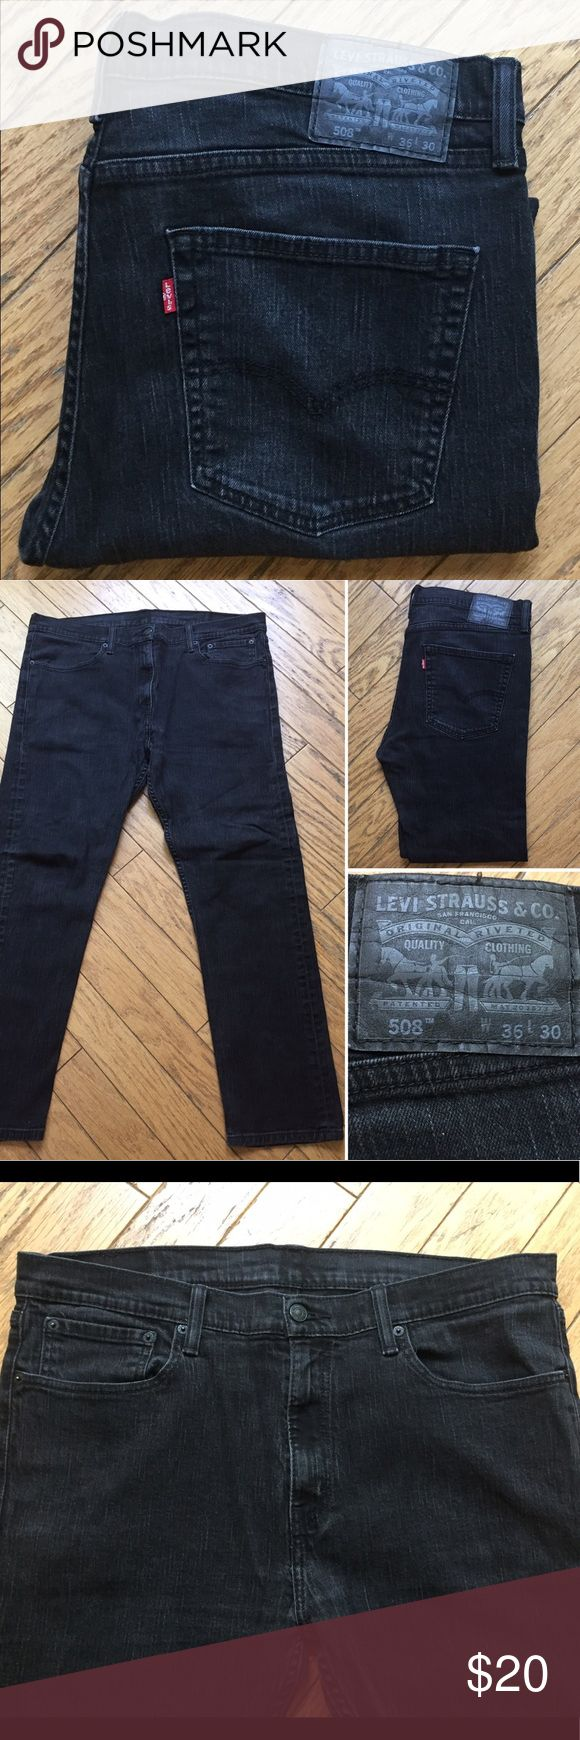 Levi's 508 Black Regular Taper Men's 36 Waist x 30 Men's regular taper fit - Levi's 508. Size 36 waist x 30 inseam/length. All black denim jeans, in excellent condition. JSYK - I discount all bundles ☺️ Prices are negotiable so make an offer if you're interested, thanks! Levi's Jeans Slim Straight